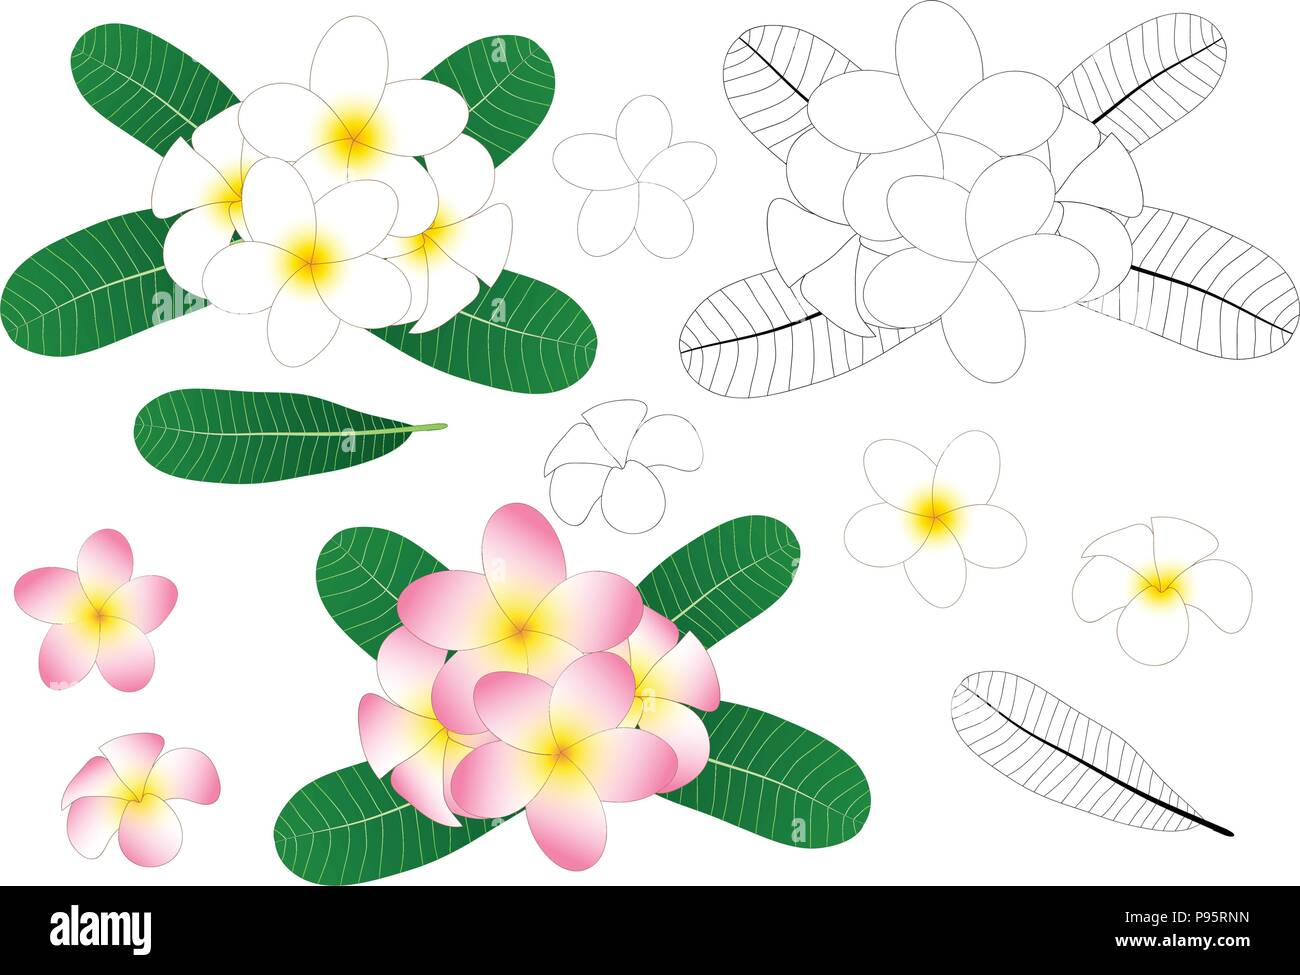 White and Pink Plumeria, Frangipani Outline isolated on White Background. Vector Illustration. - Stock Vector